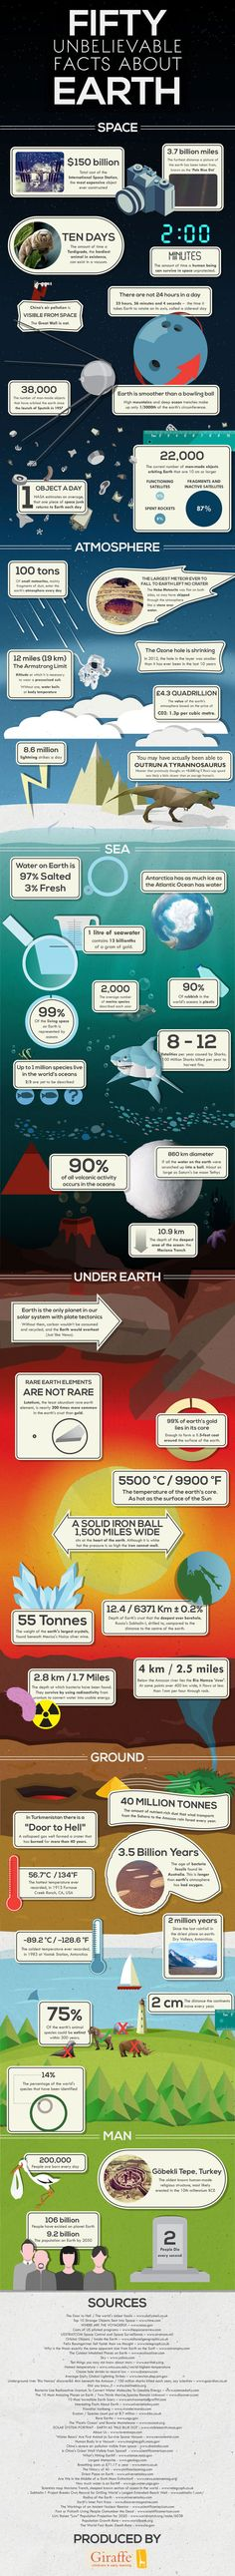 50 Fast Facts You Should Know About Earth – Space and Astronomy